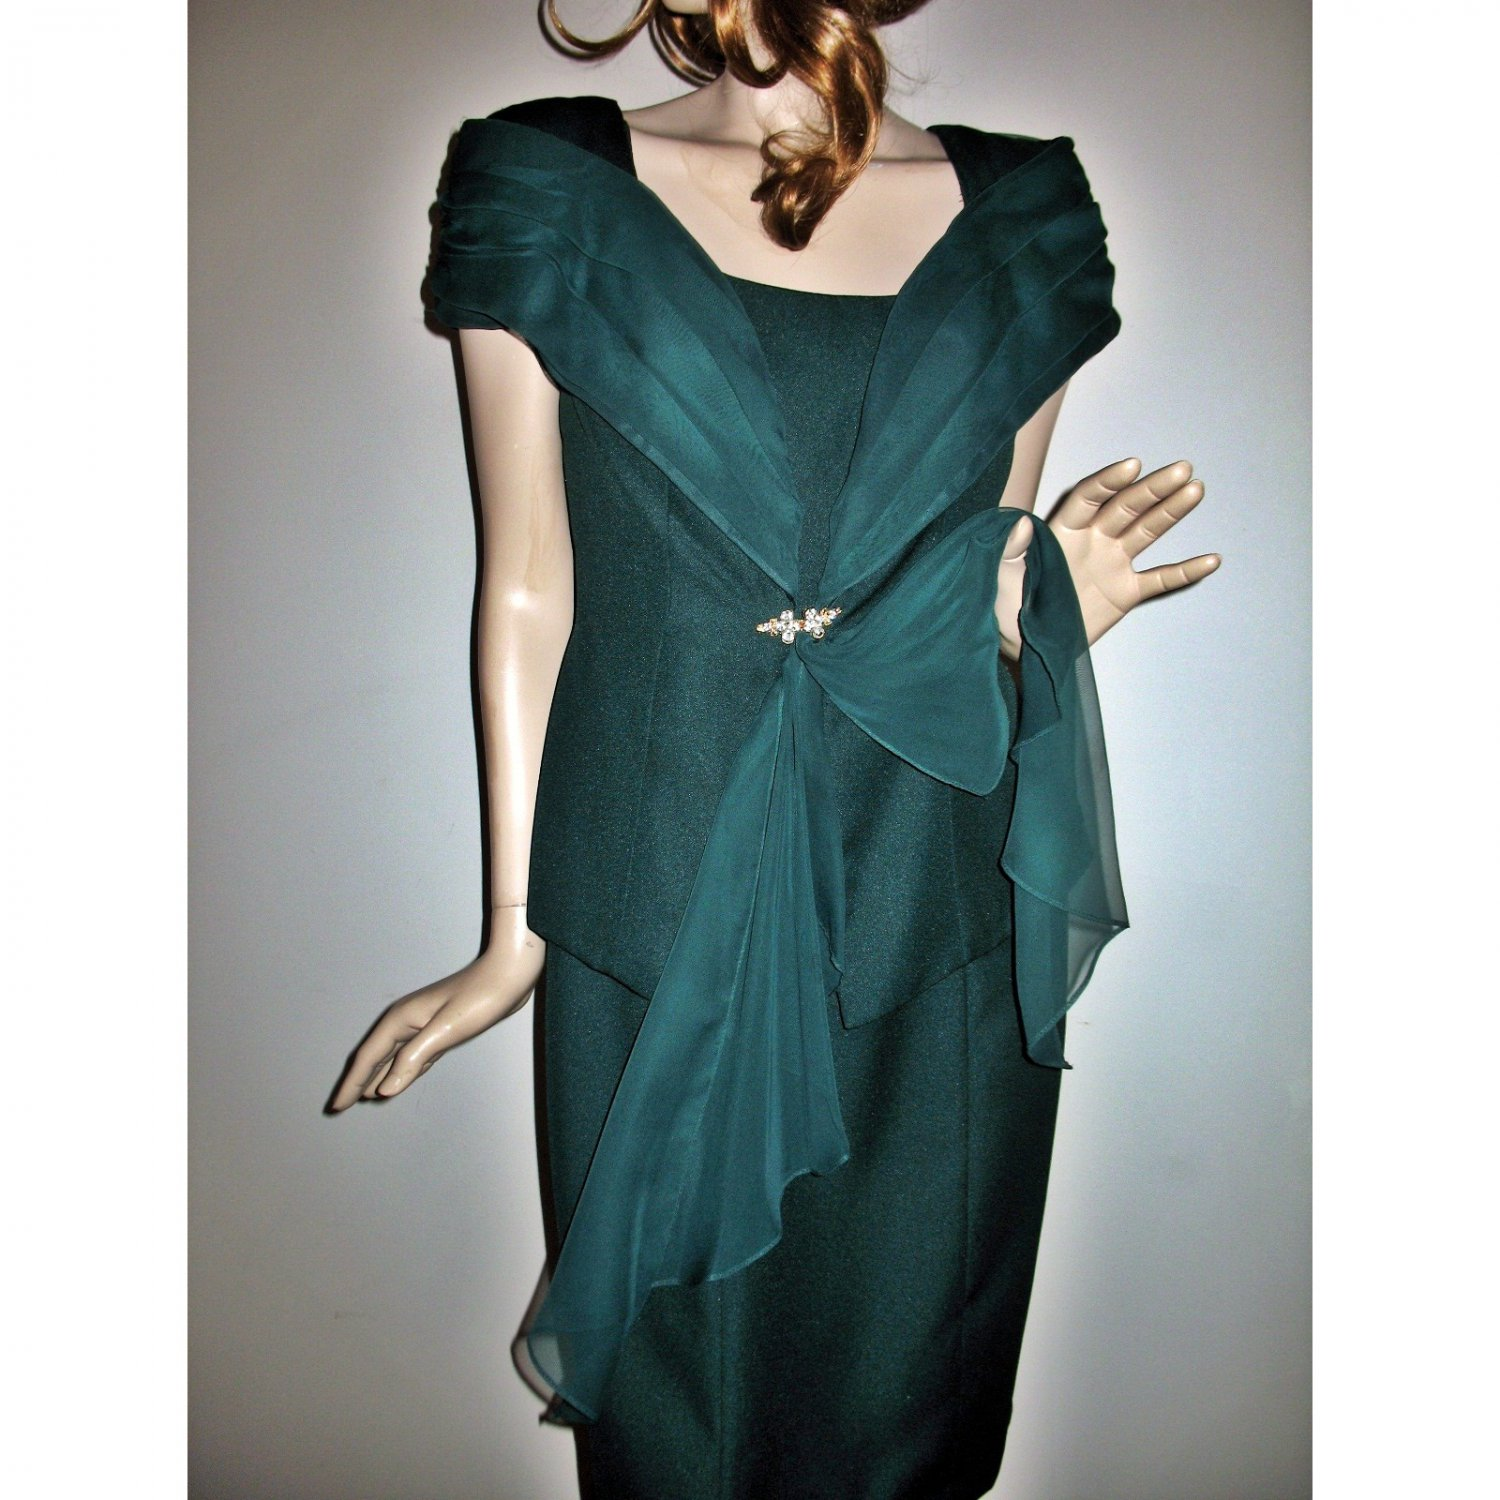 Wedding Guest Formal Bridal Party Green Chiffon Dress 2-Piece Dress and Jacket - Size Medium